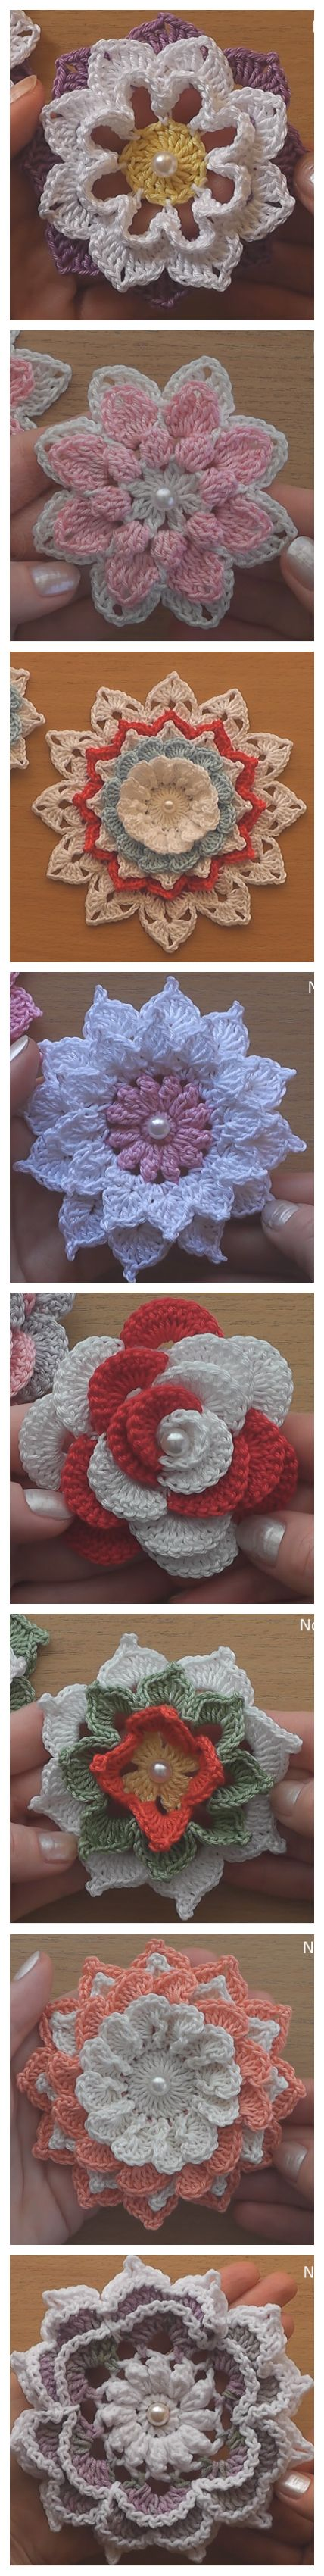 Crochet 8 Gorgeous Flowers